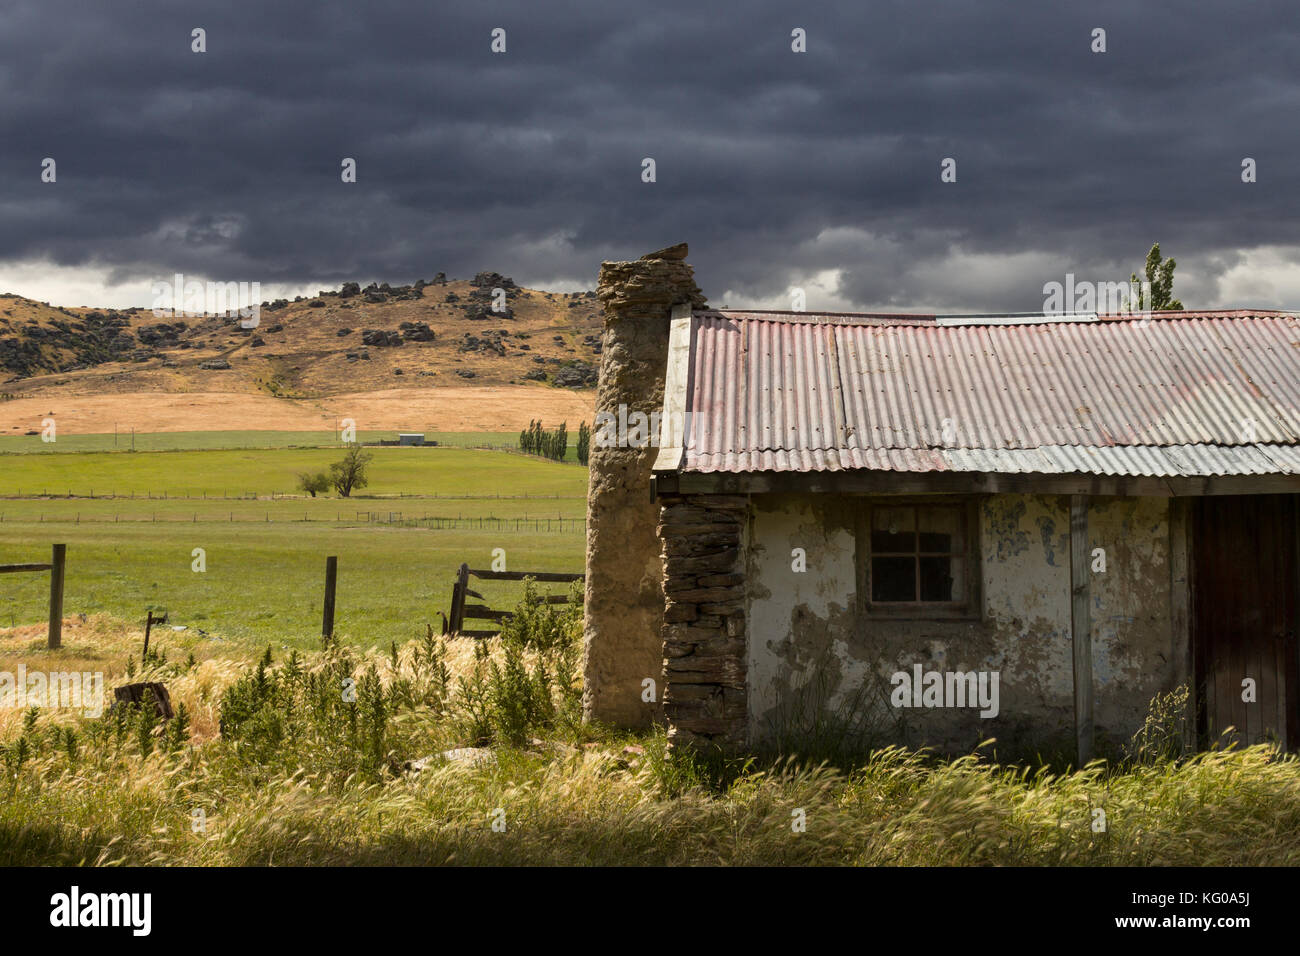 An abandoned cottage beneath gathering storm clouds in the Catlins, New Zealand - Stock Image